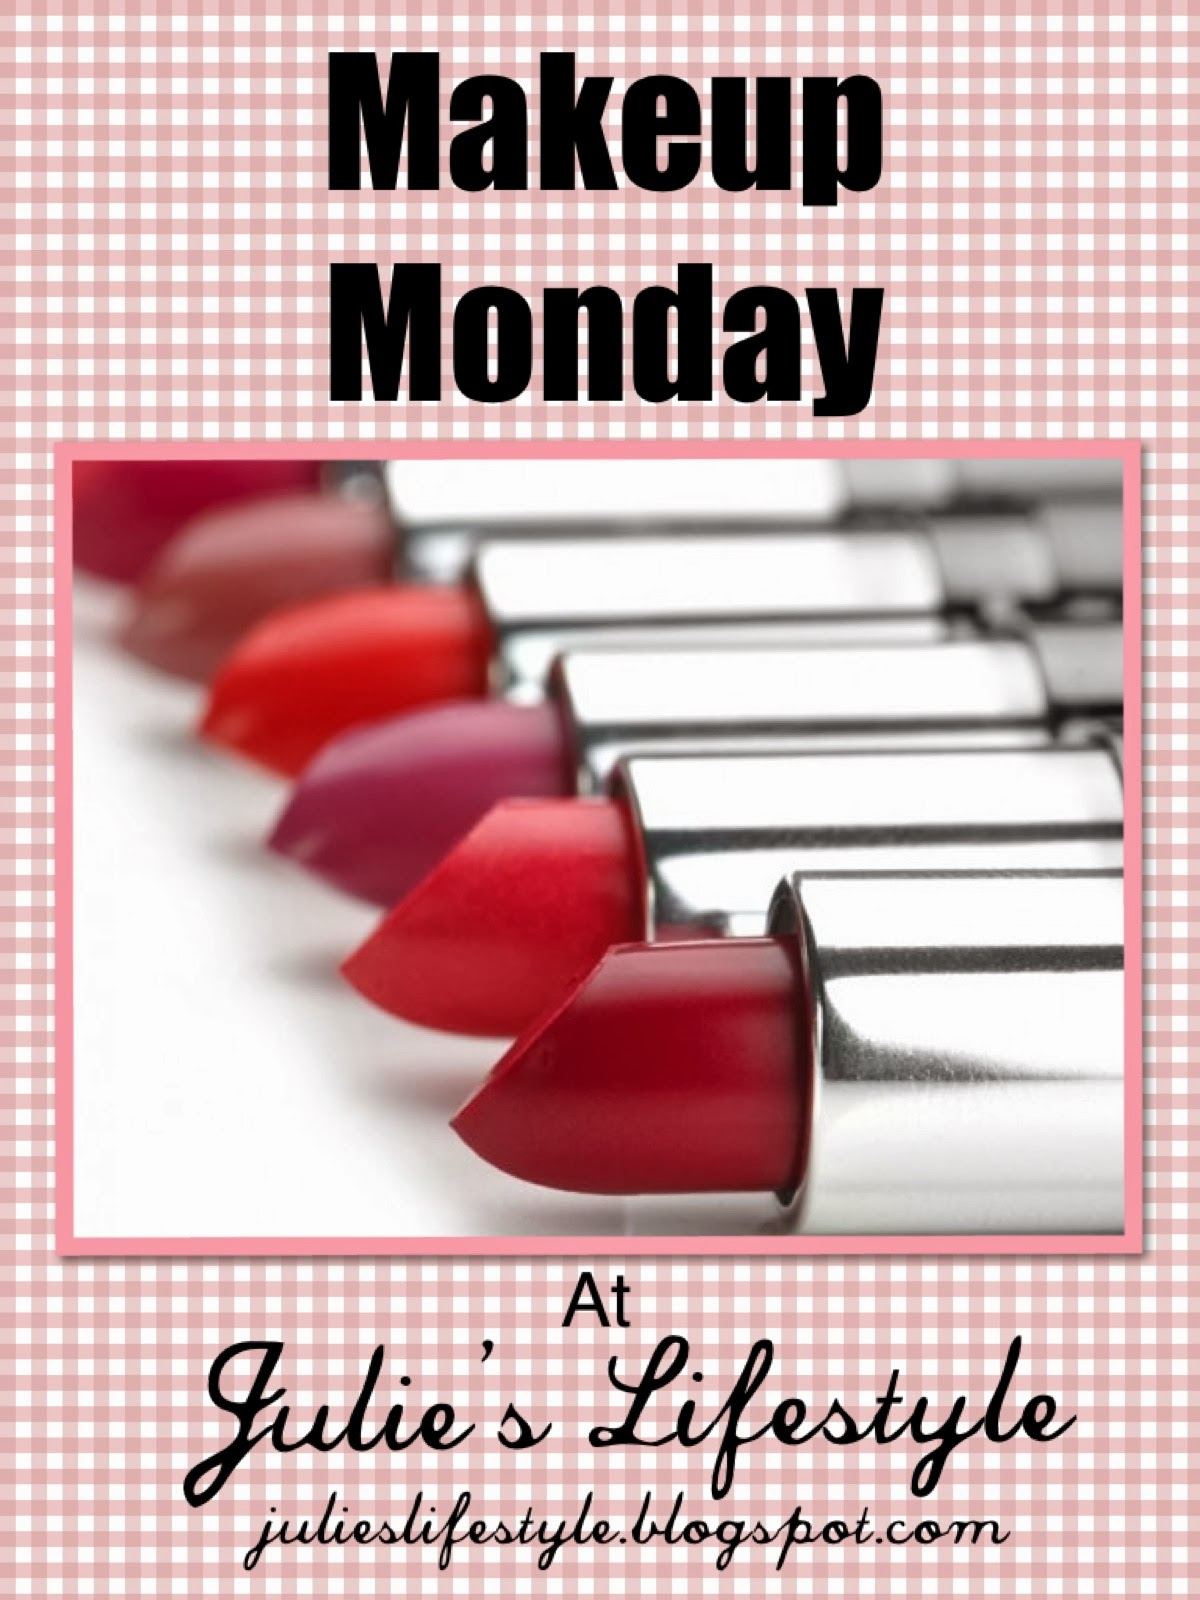 Join me Monday for Makeup Tips